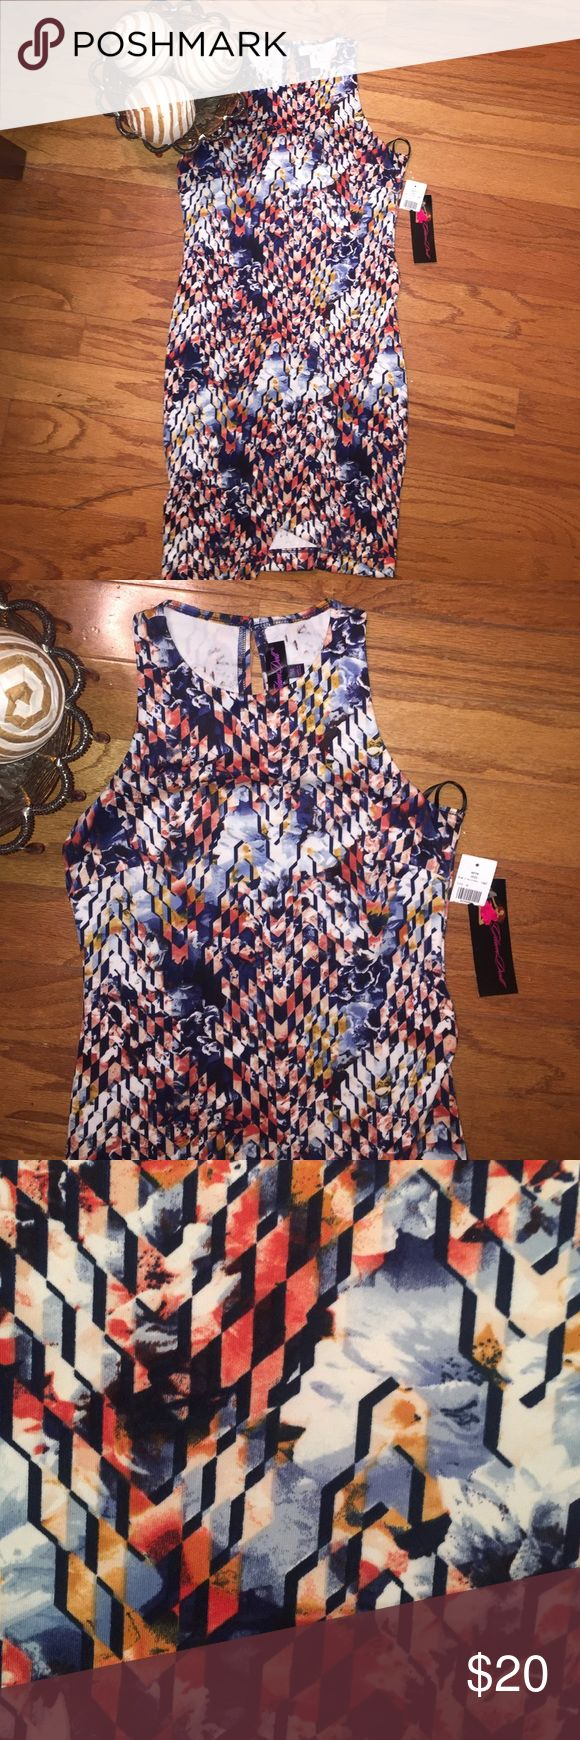 NWT Bodycon Dress This is a printed Bodycon dress. Pulls overhead with one button in back at neck. Asymmetric, flattering with lots of give, however if your larger than a medium it will not fall right. Colors include Ivy, blue, coral according to tag. 95% polyester 5% spandex. 32 1/2 inches at shortest part and 34 1/2 inches at the longest part of the skirt. Pair with Jean blazer and some boots you ready for fall... Dresses Asymmetrical